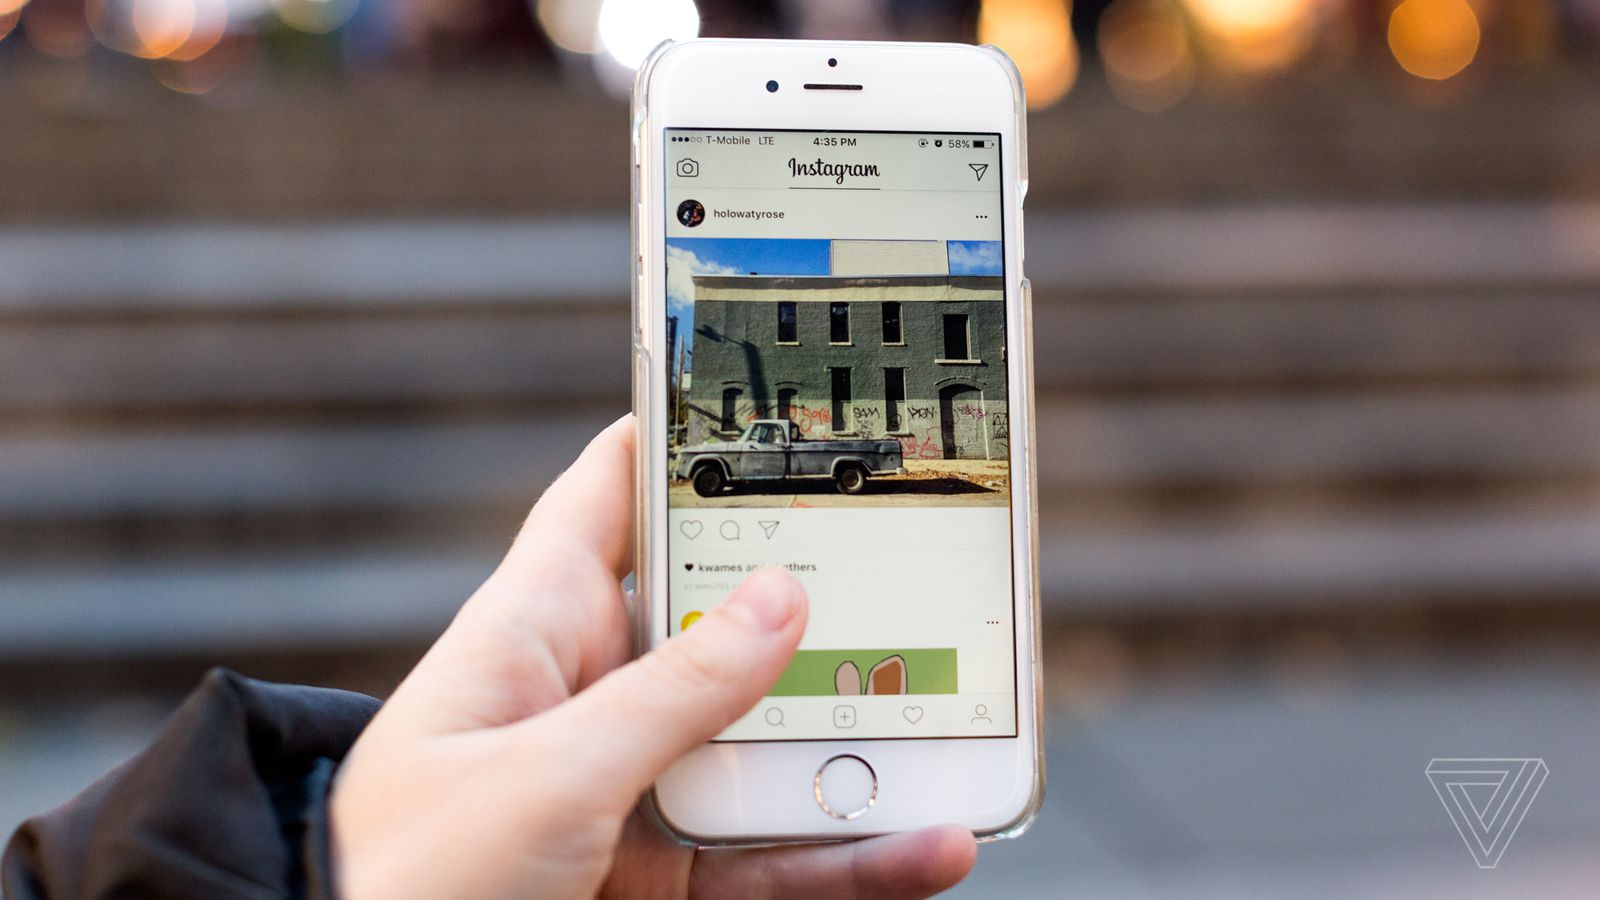 Instagram Accounts are Being Deleted Without Explanation